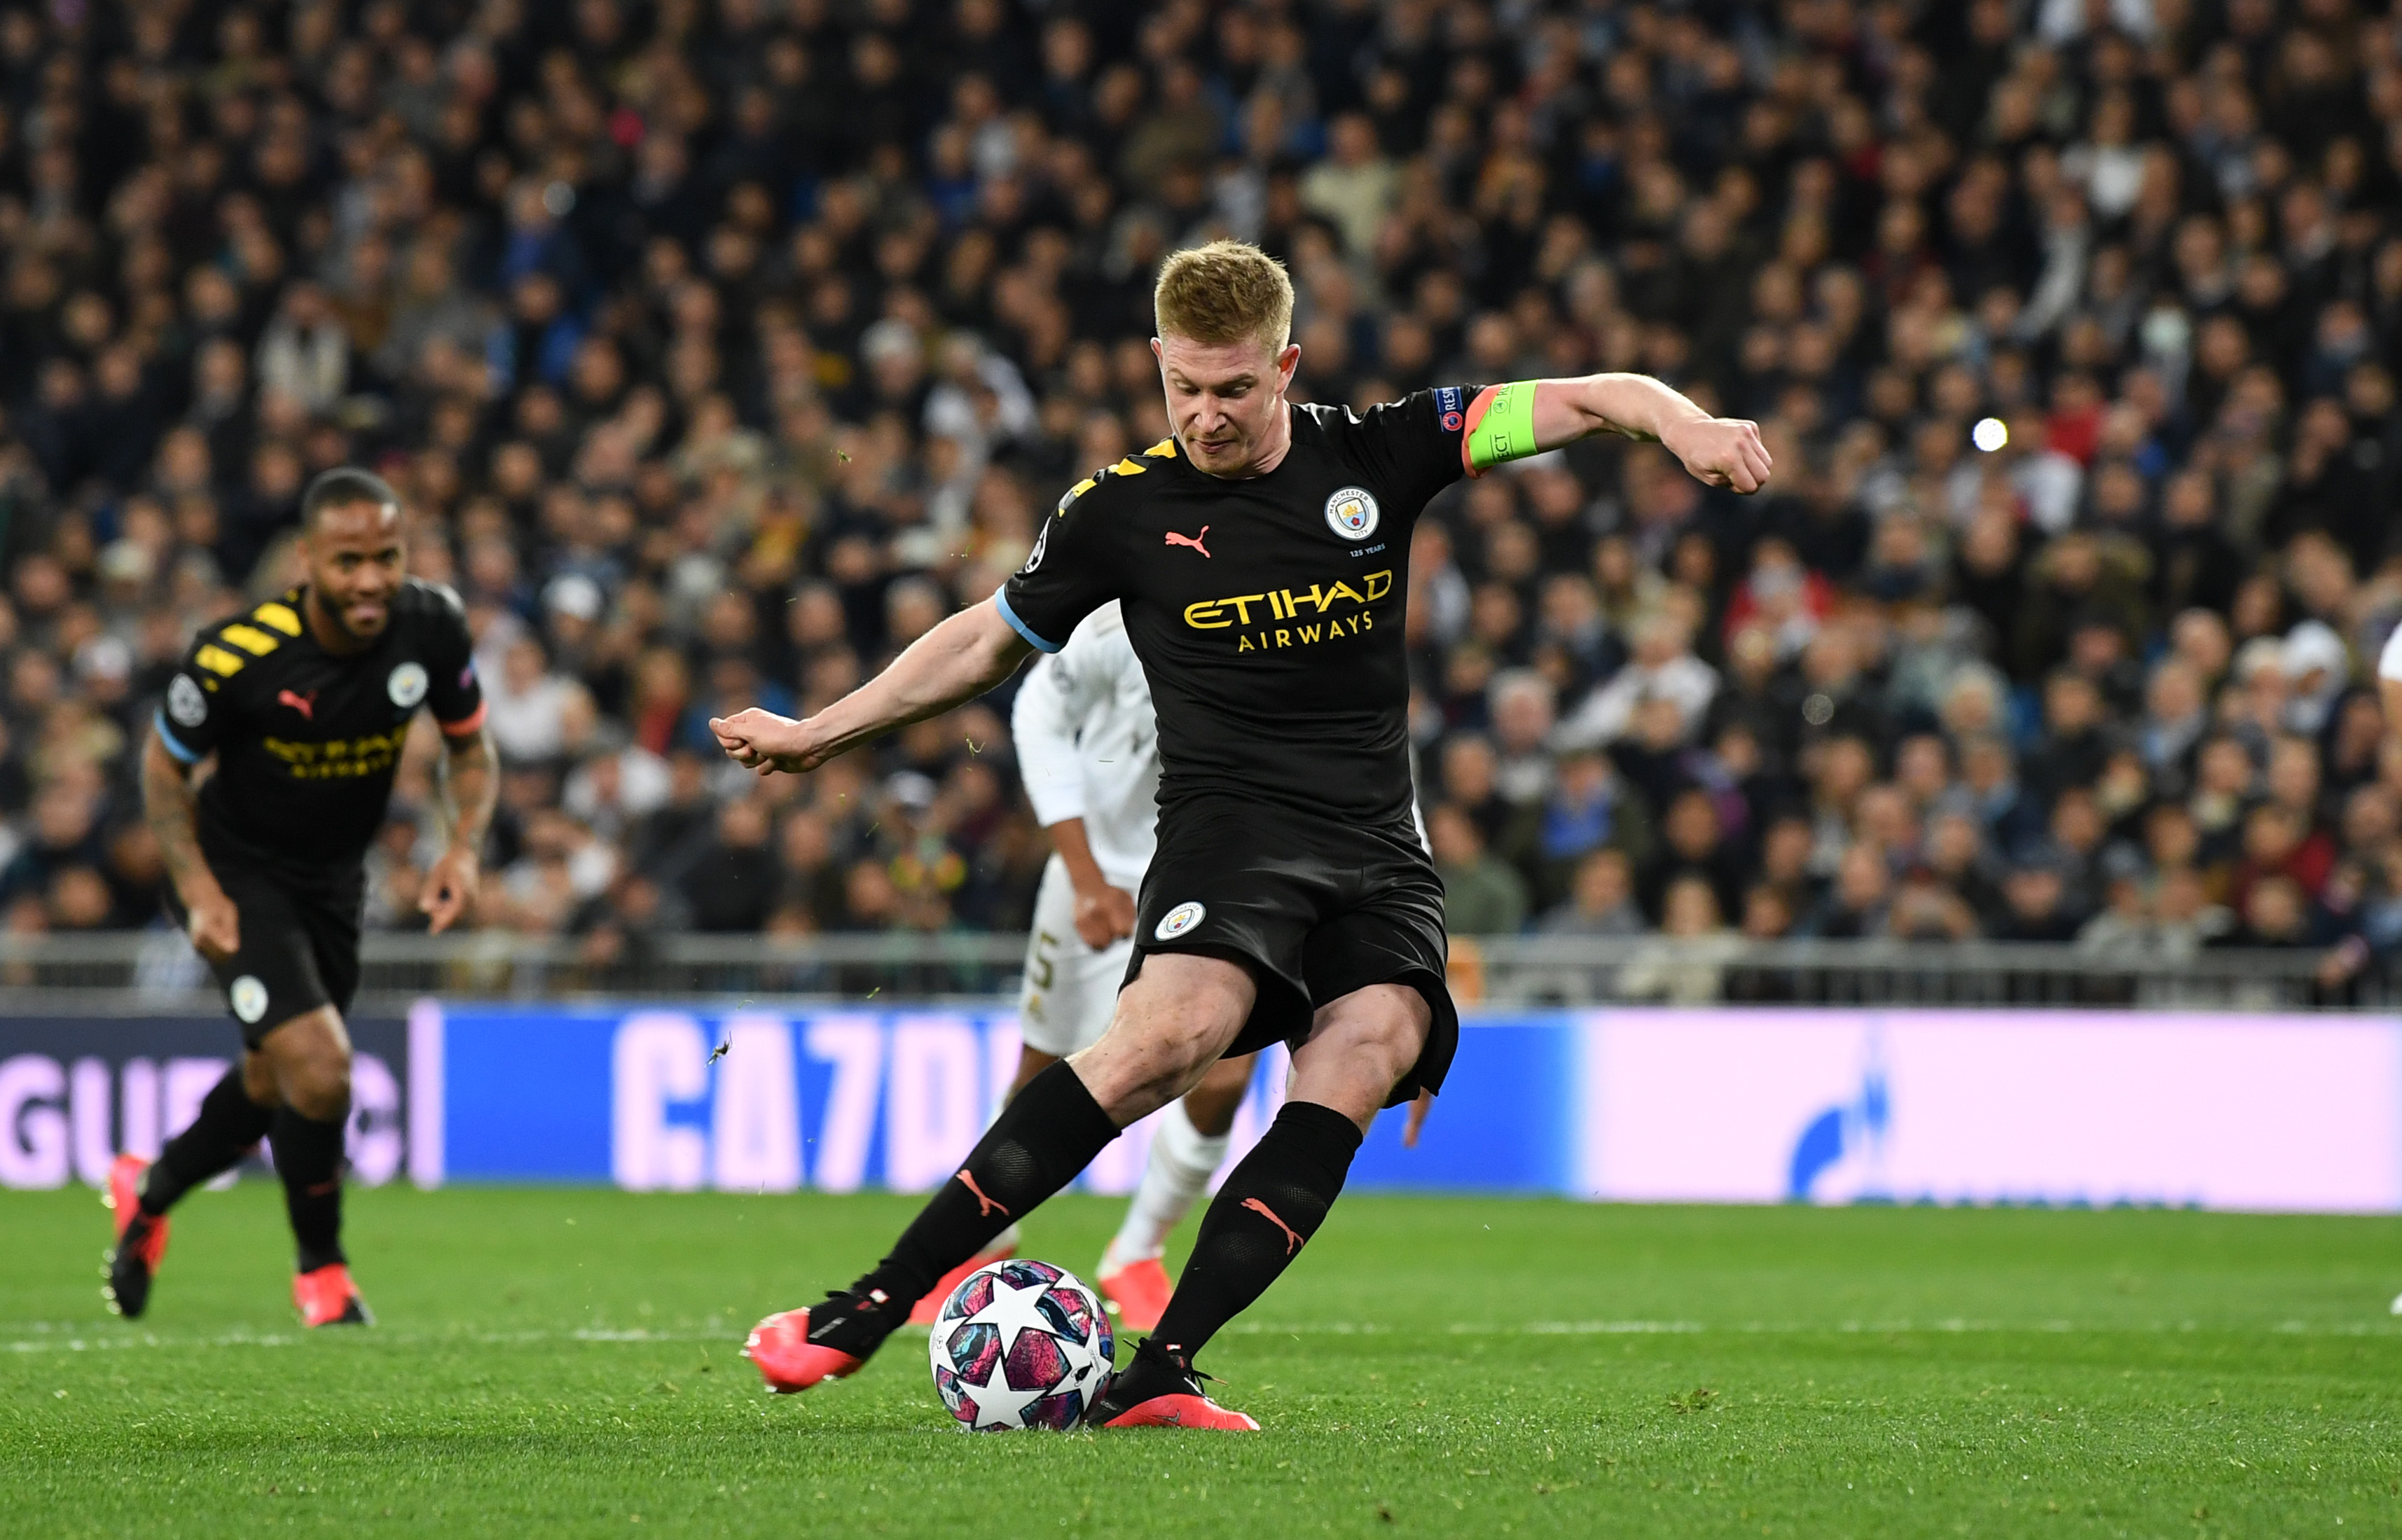 Kevin De Bruyne slots the penalty home.